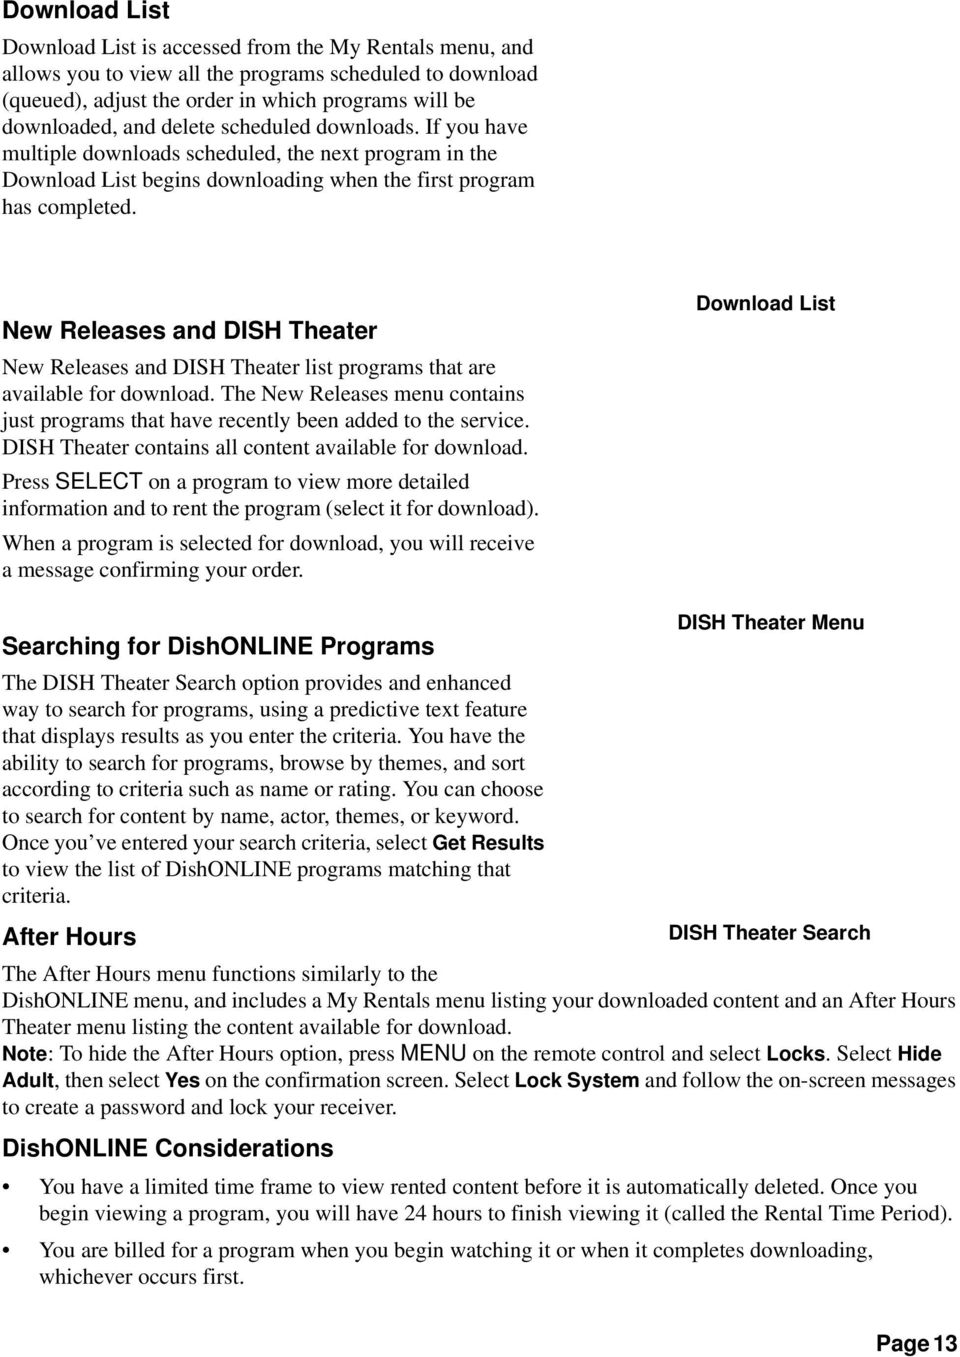 New Releases and DISH Theater New Releases and DISH Theater list programs that are available for download. The New Releases menu contains just programs that have recently been added to the service.